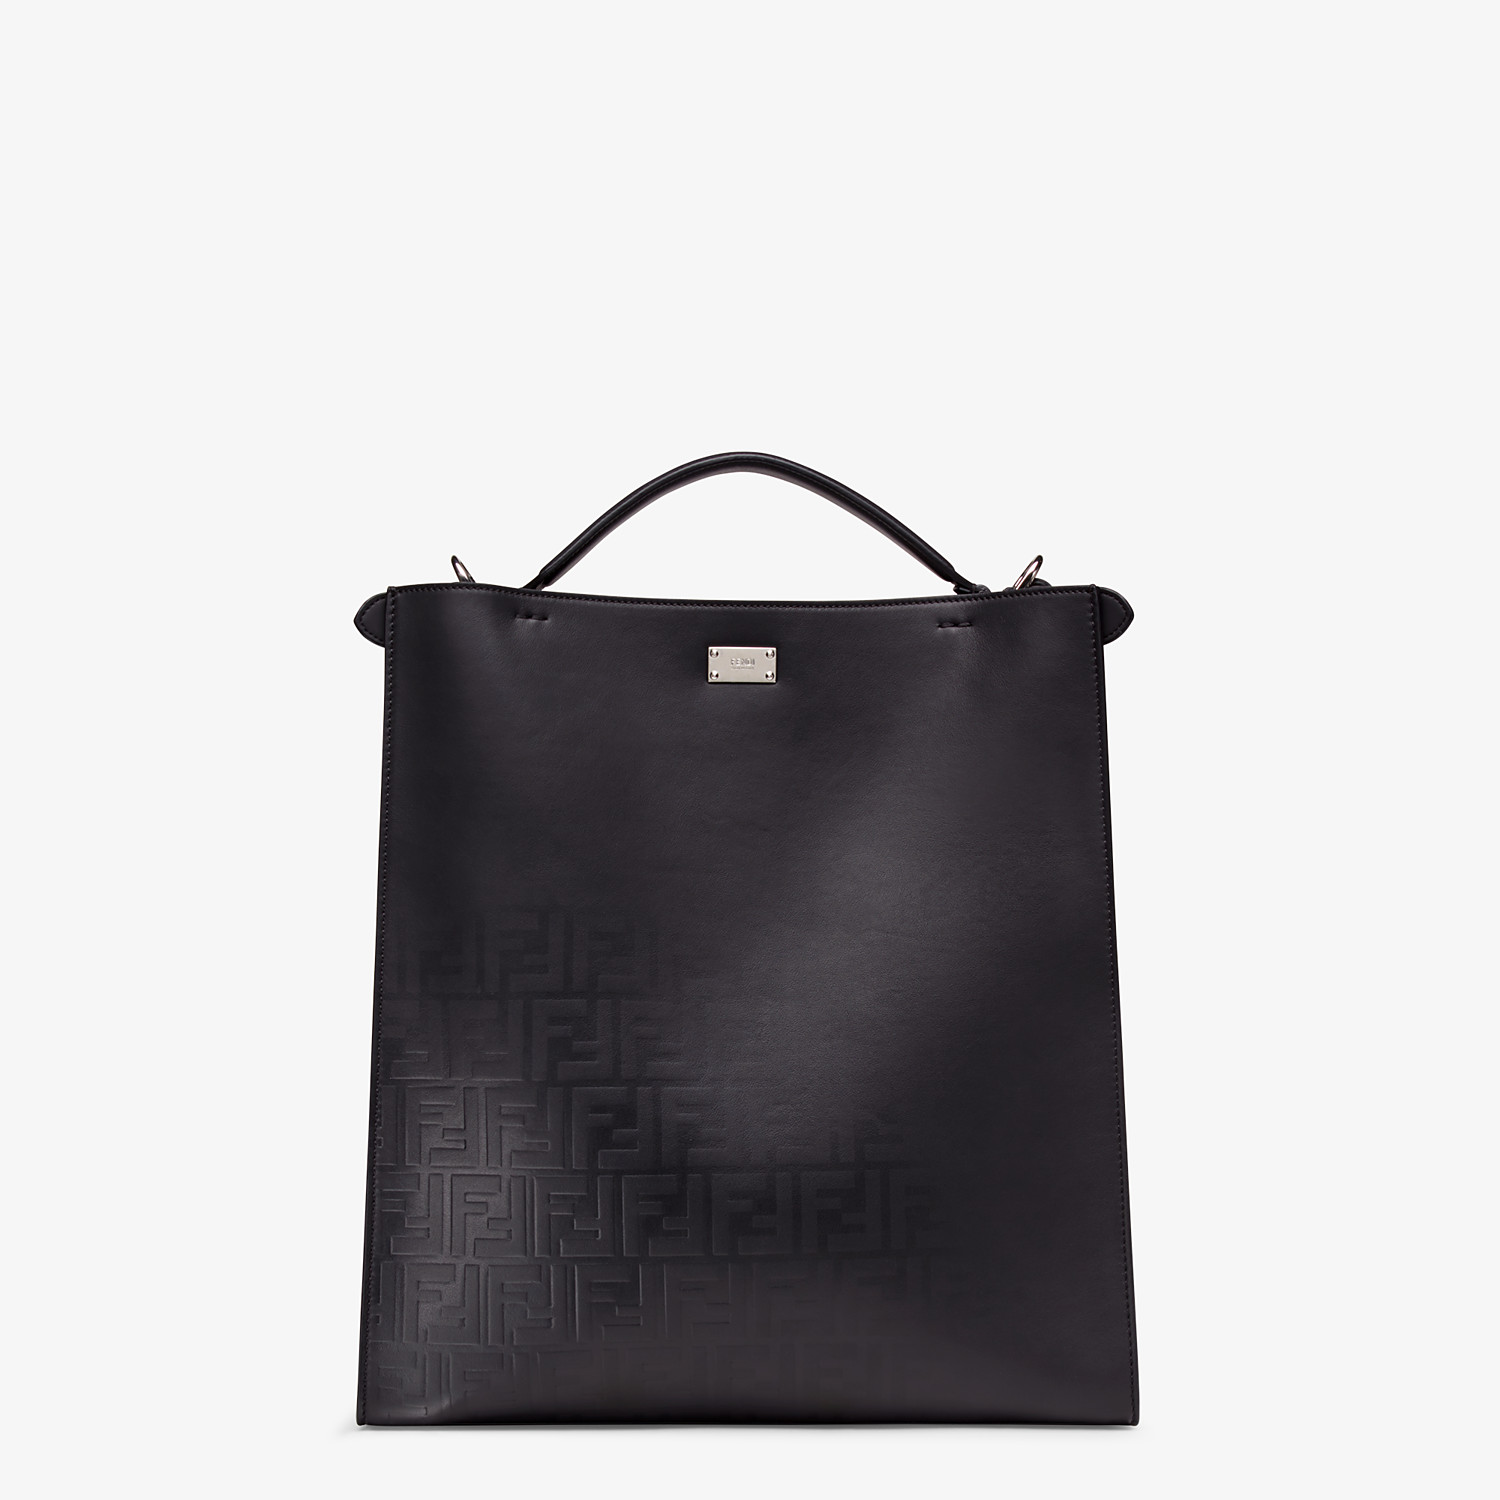 FENDI PEEKABOO X-LITE FIT - Black calfskin bag - view 4 detail